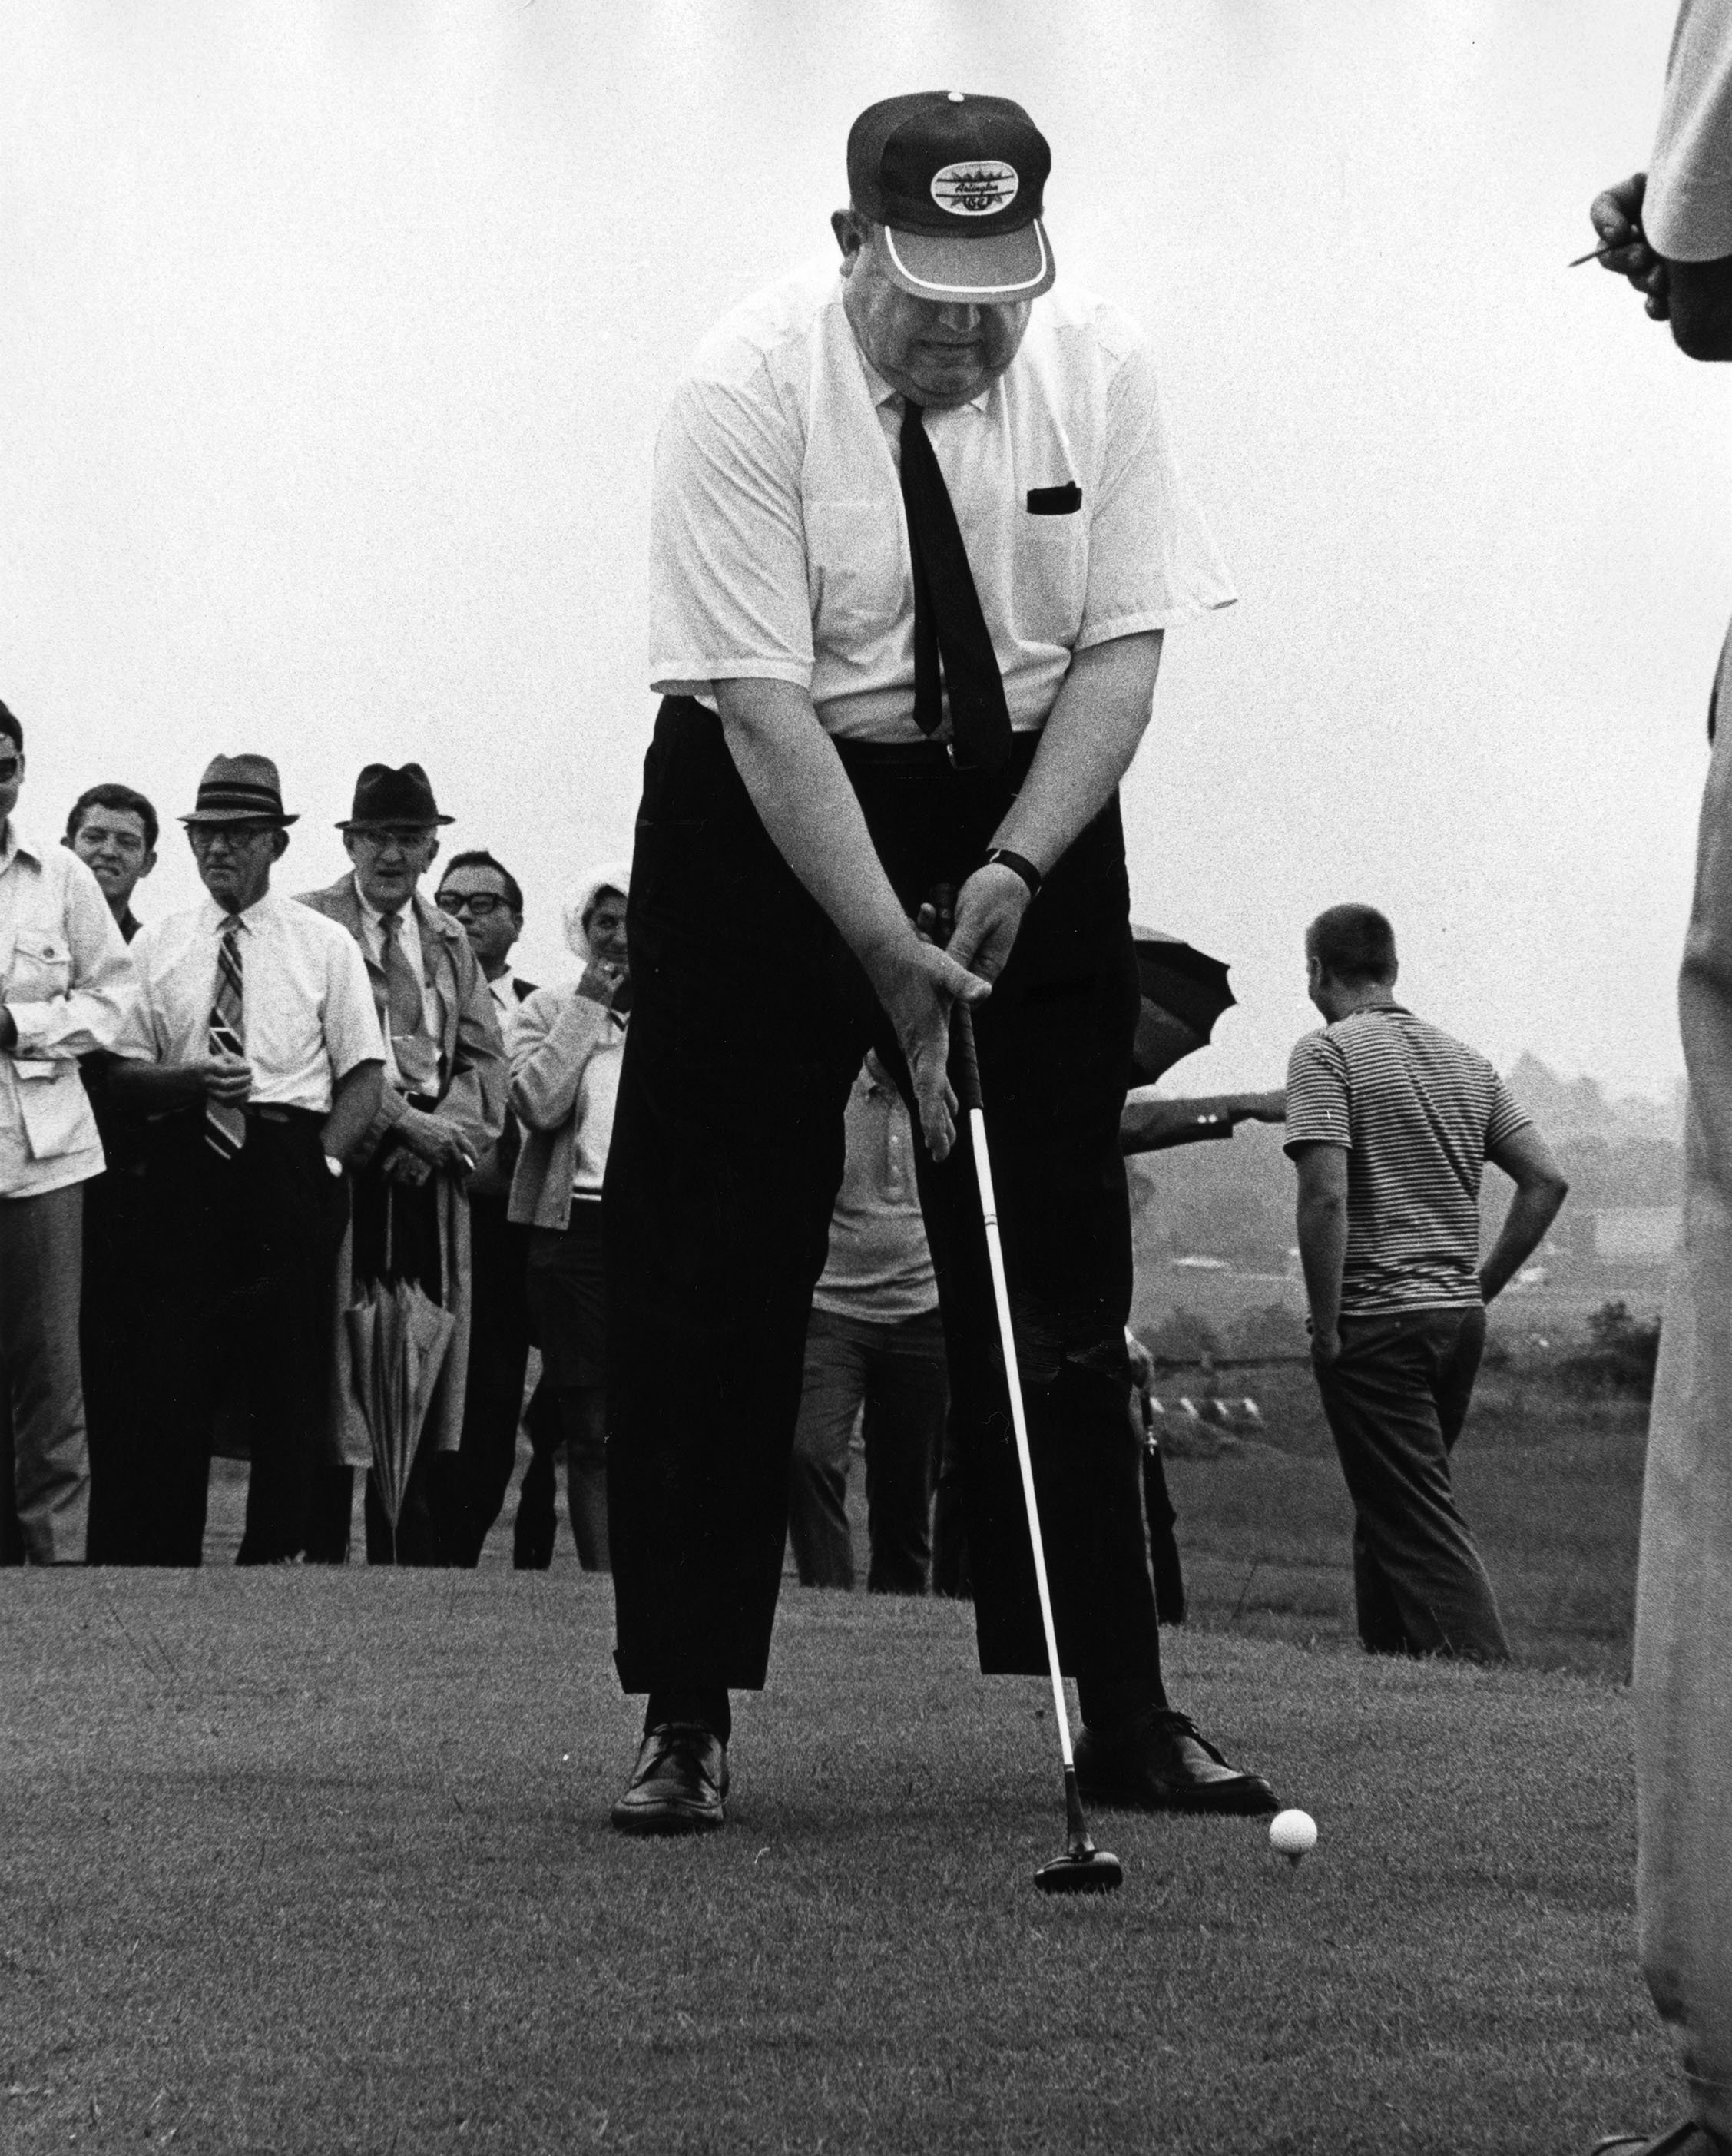 EKU President Robert Martin at the grand opening of the Arlington golf course, June 1970.  EKU Photograph Collection.